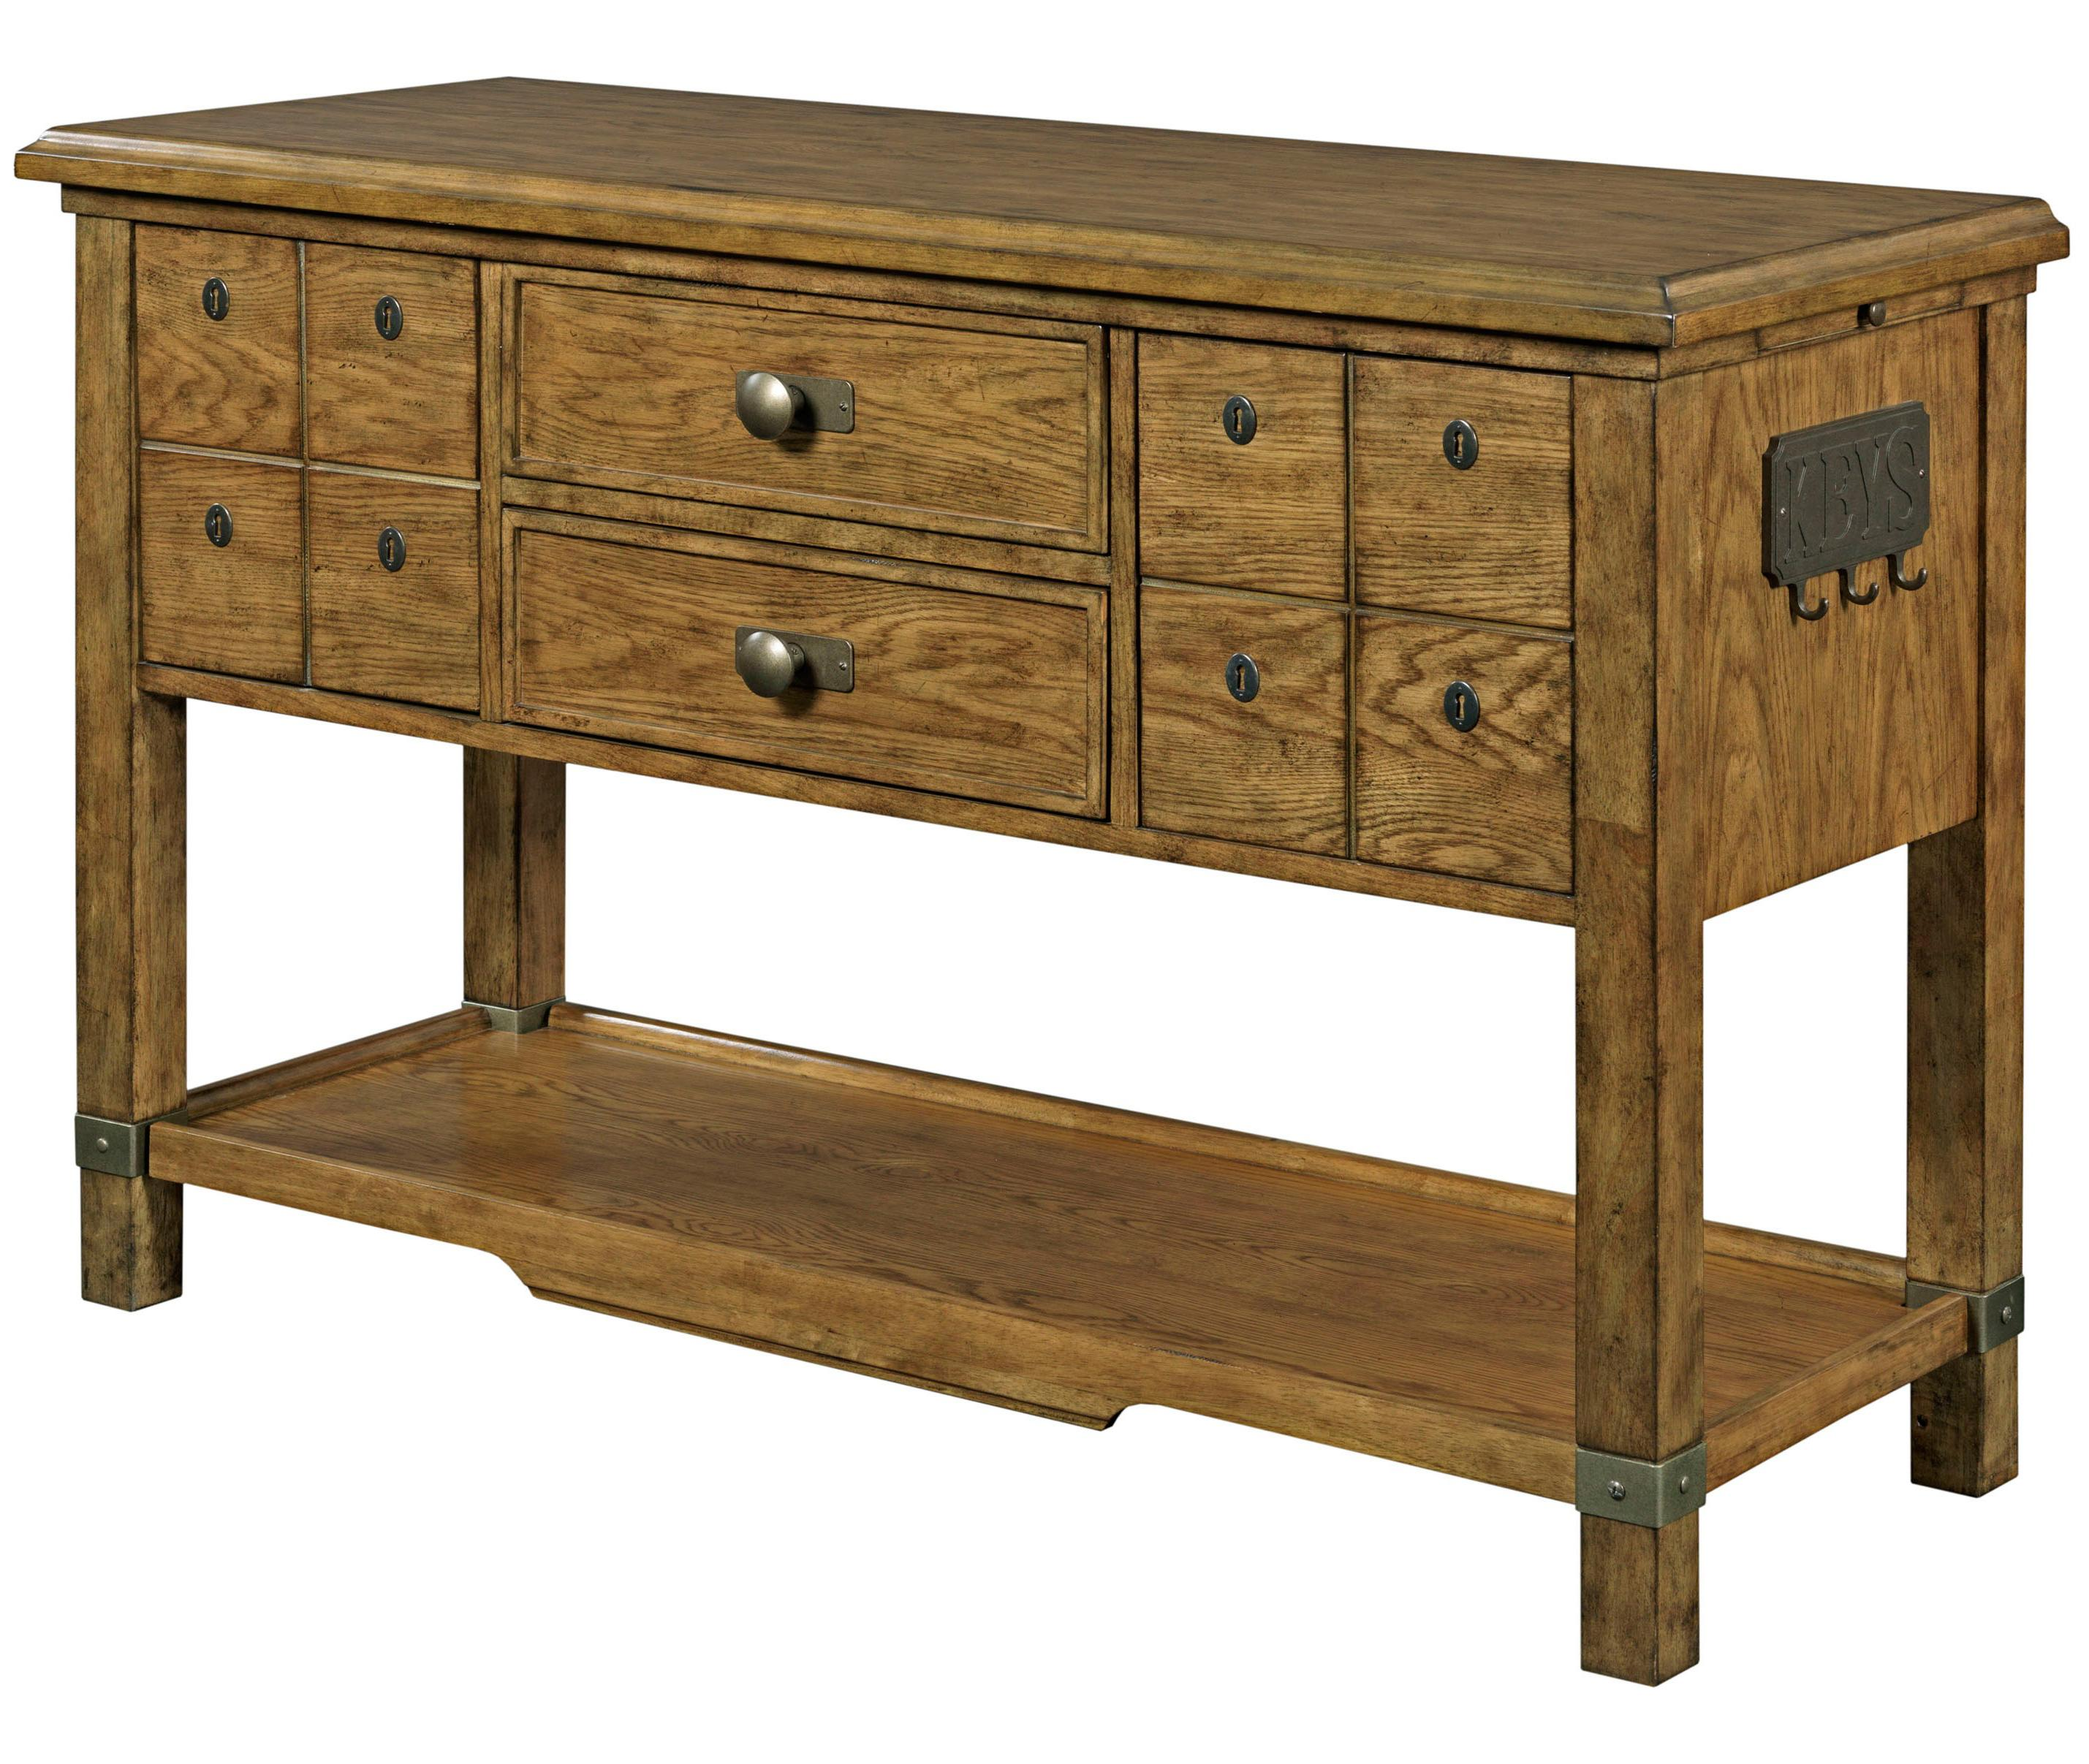 Broyhill Furniture New Vintage Sideboard - Item Number: 4808-515